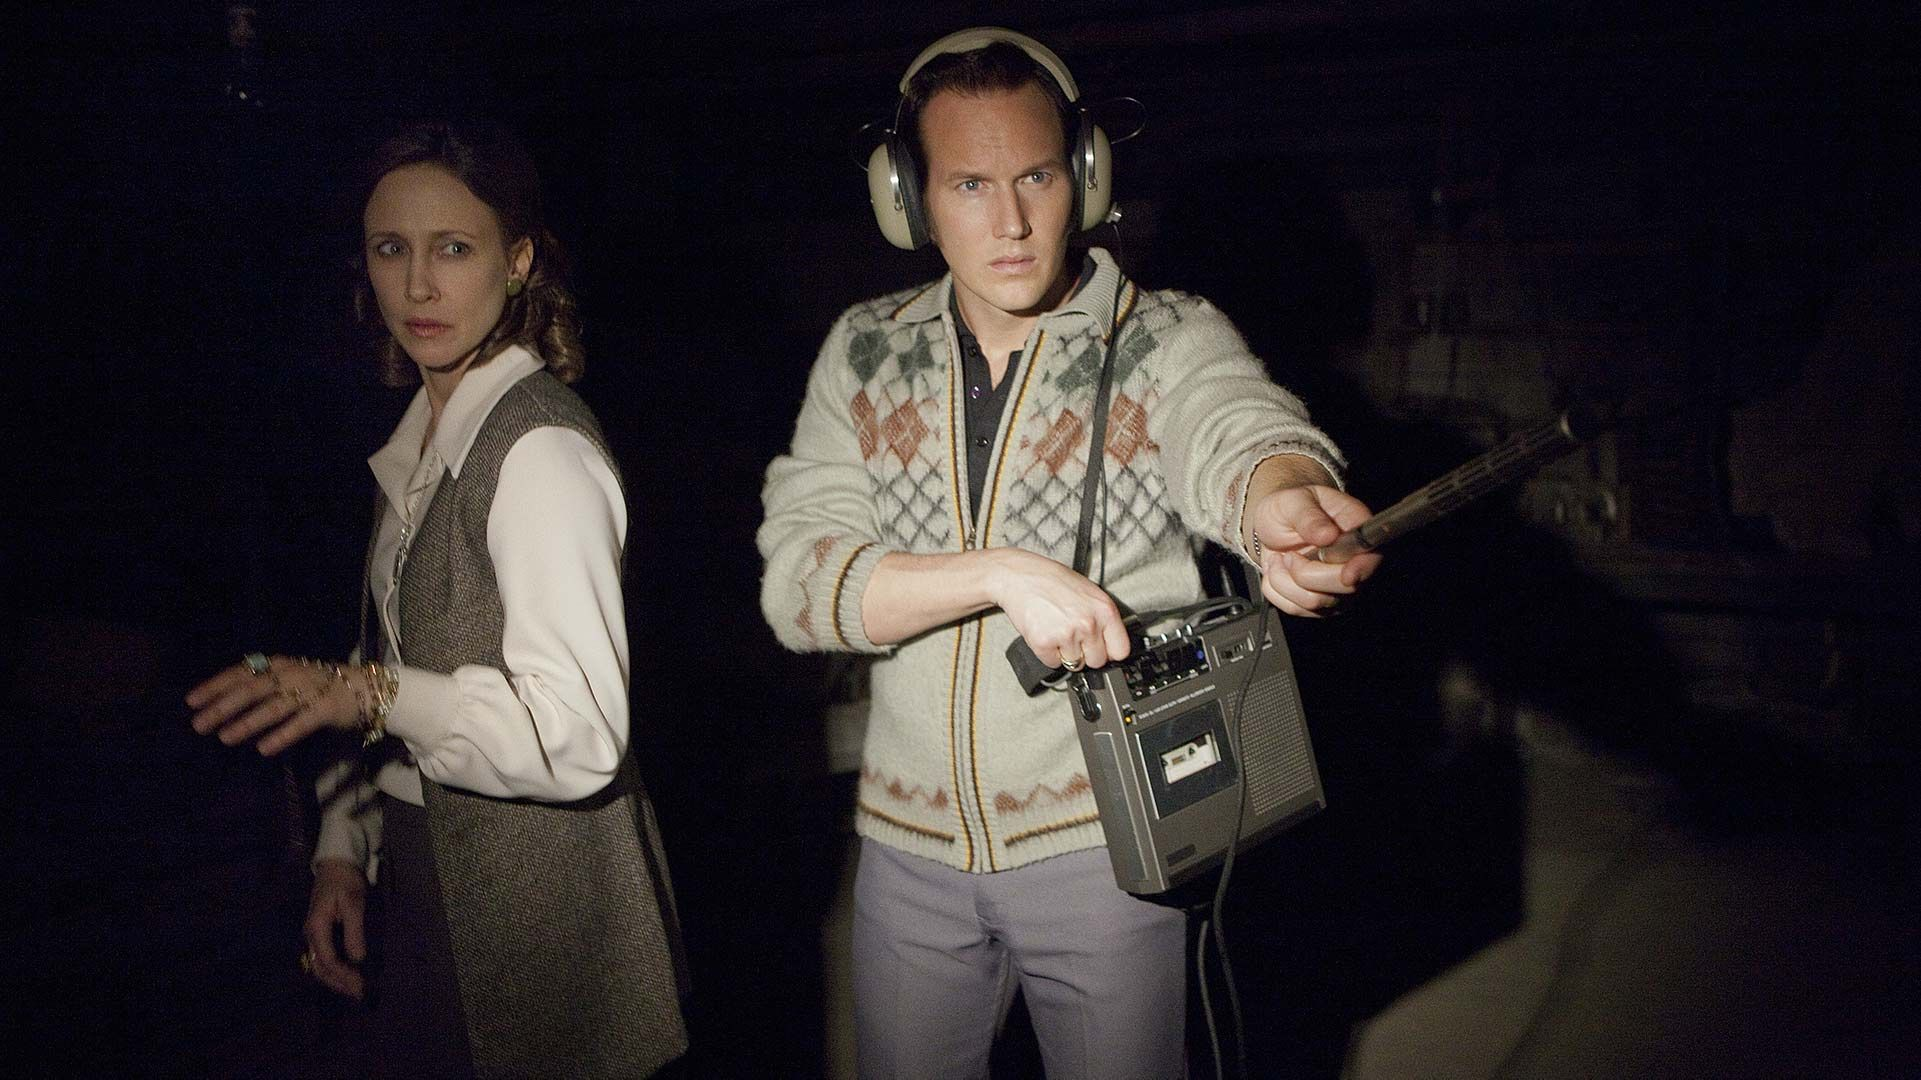 The Conjuring Movies in Order: The Conjuring